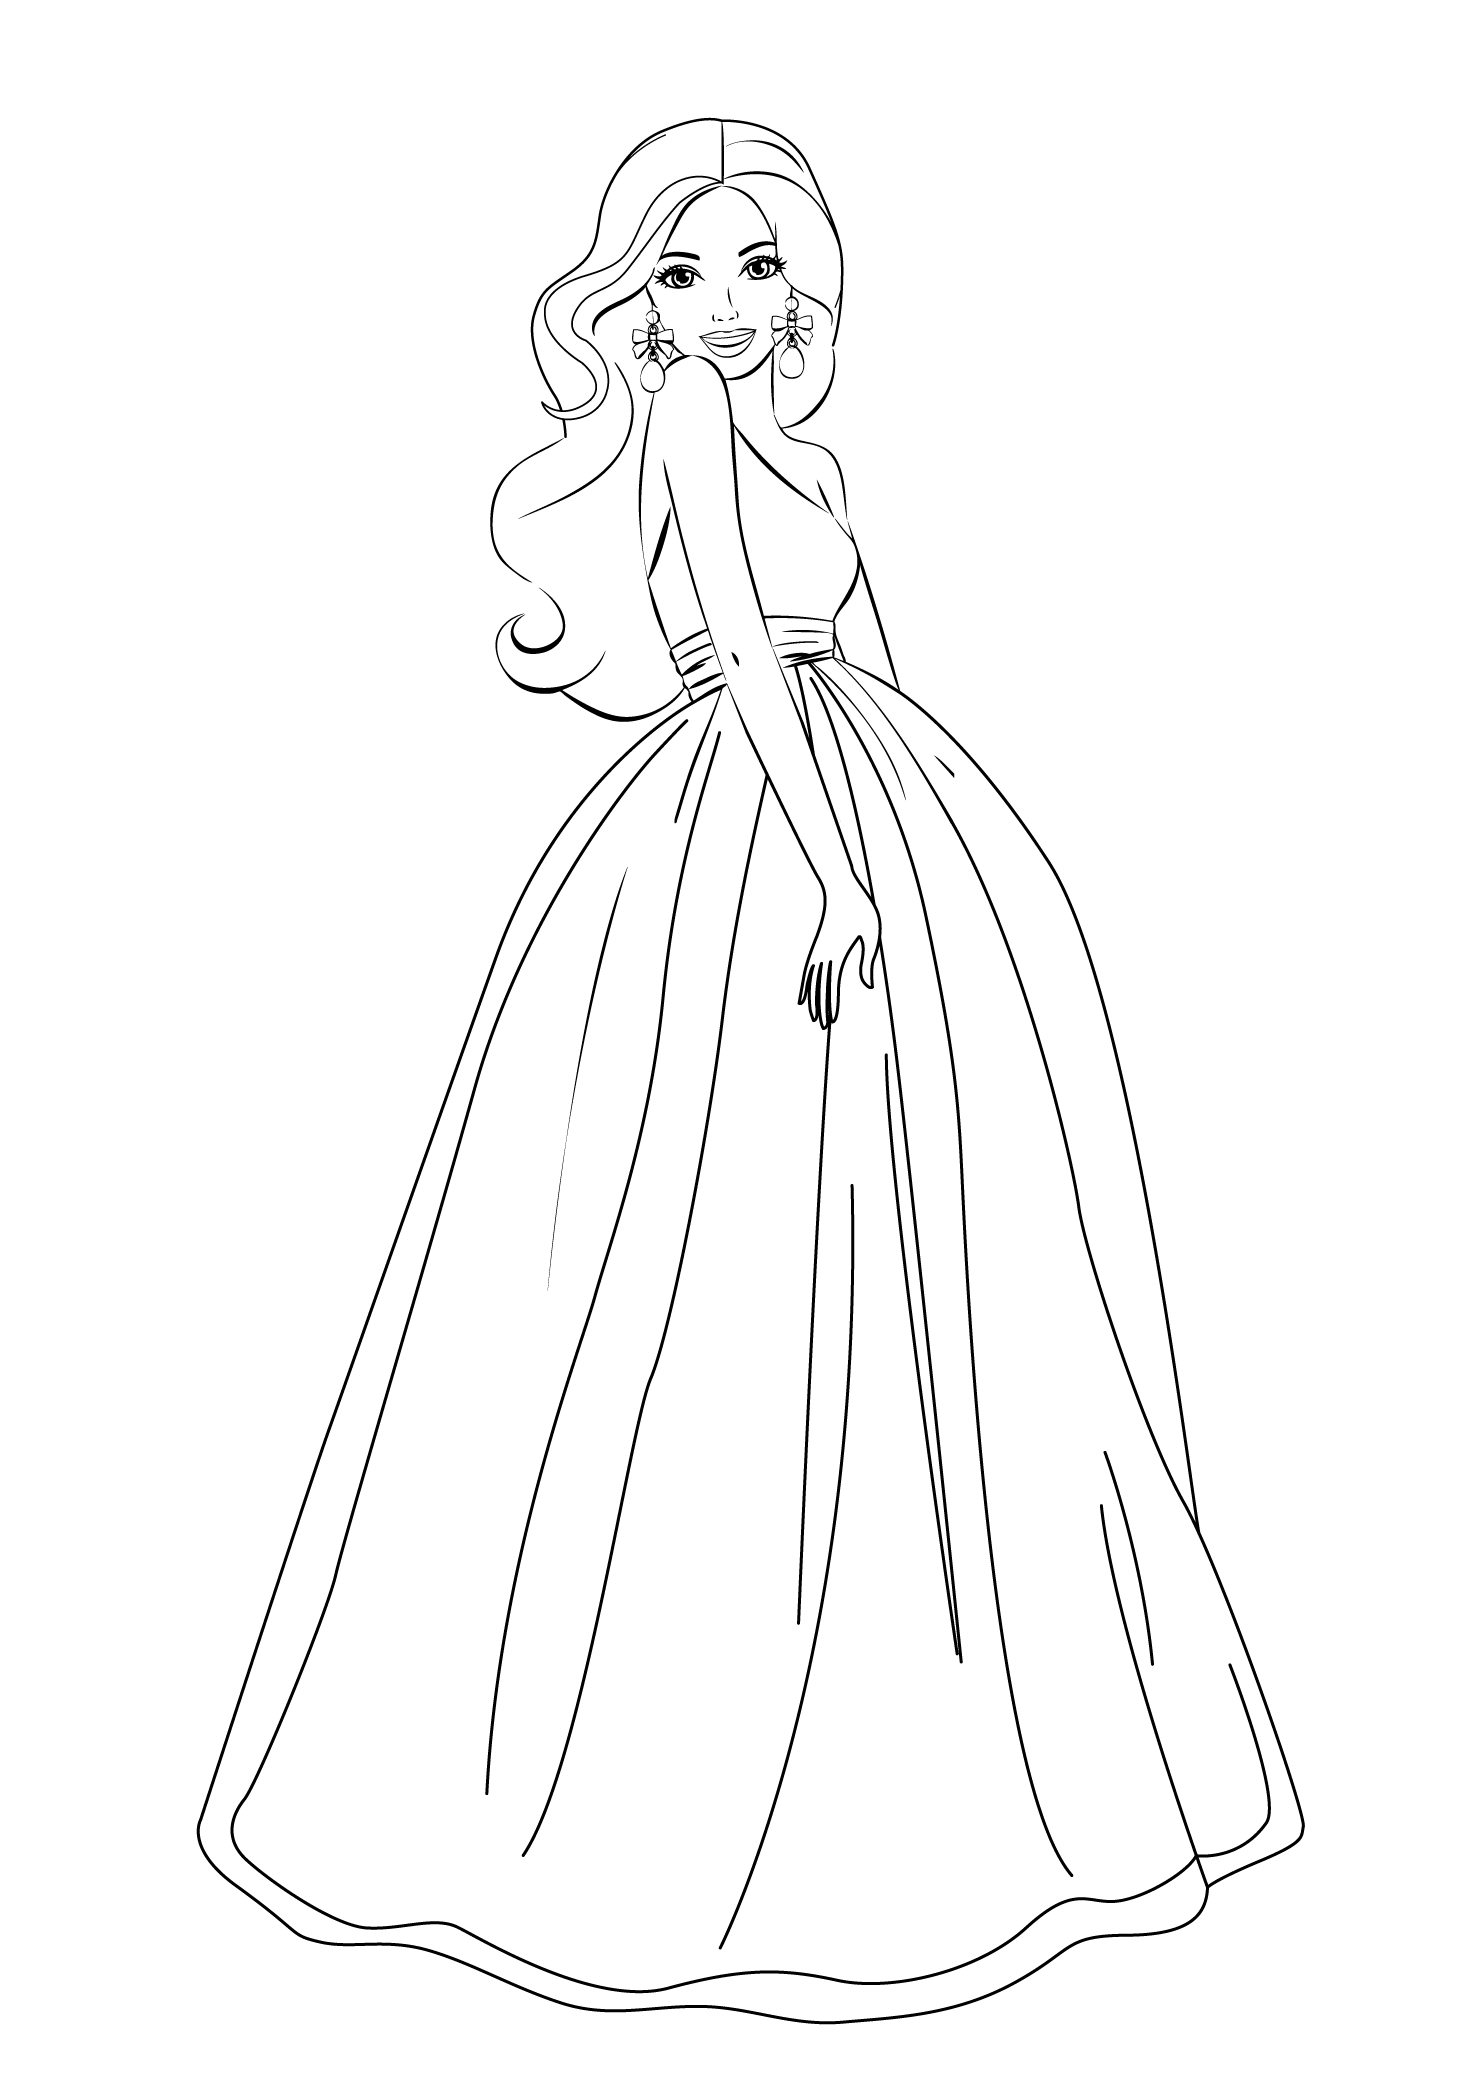 Barbie Coloring Pages For Print